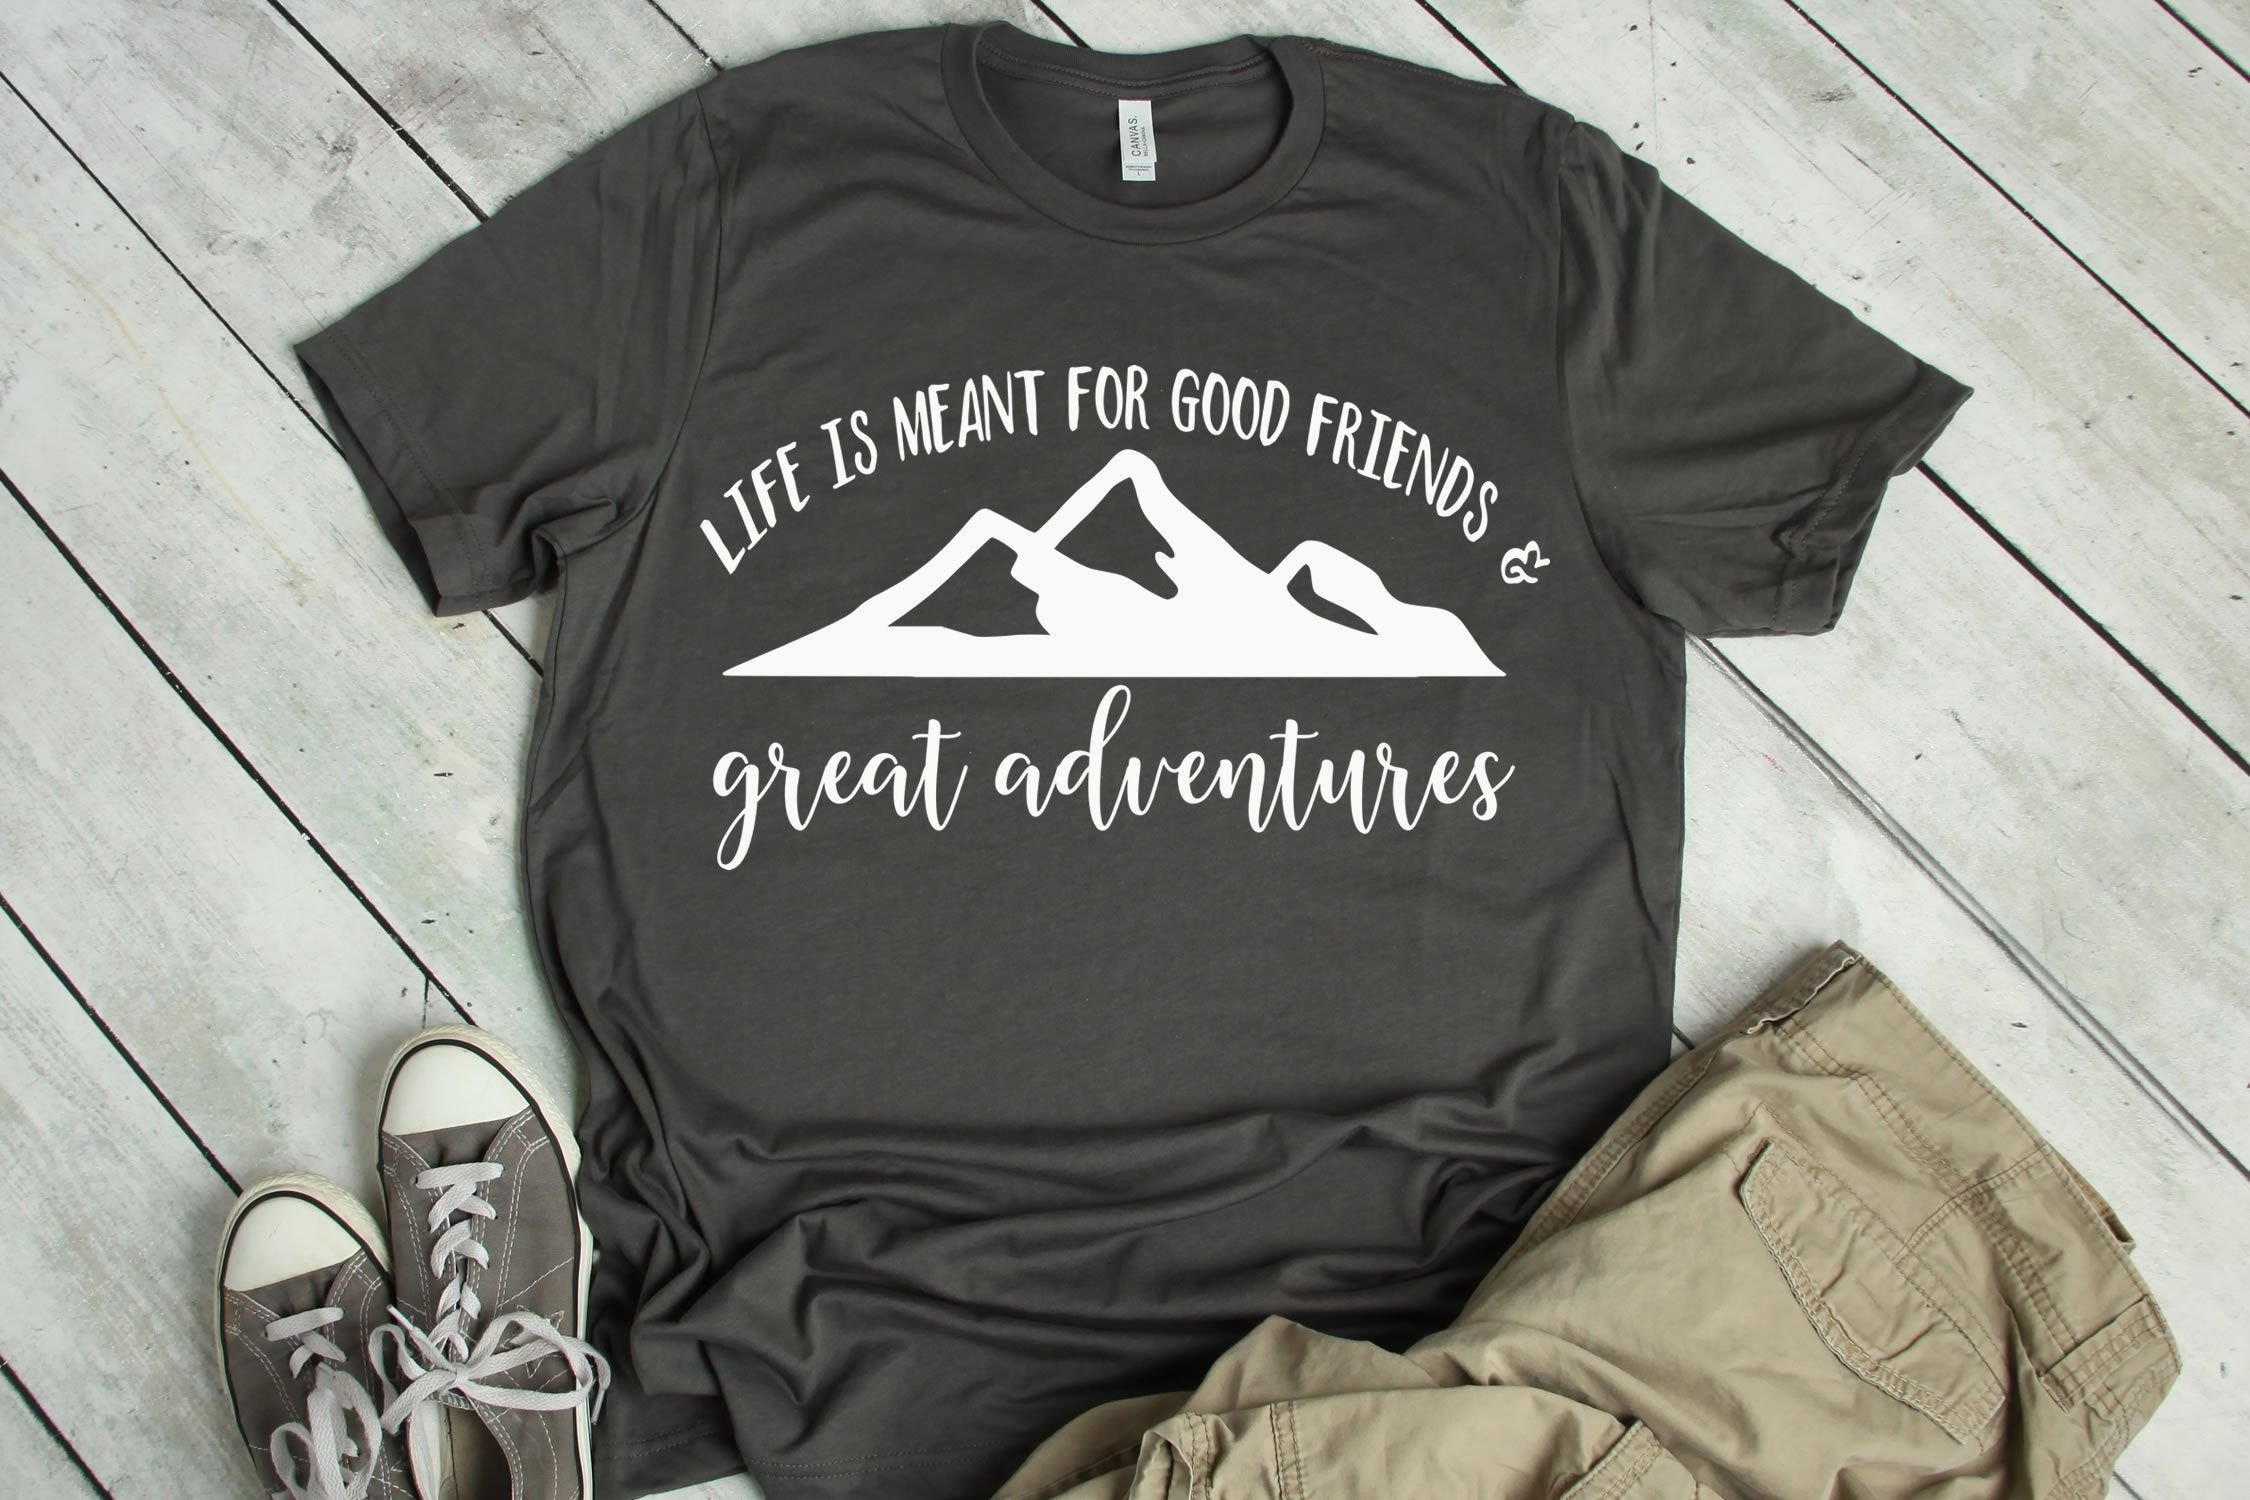 Life is meant for good friends and great adventures t